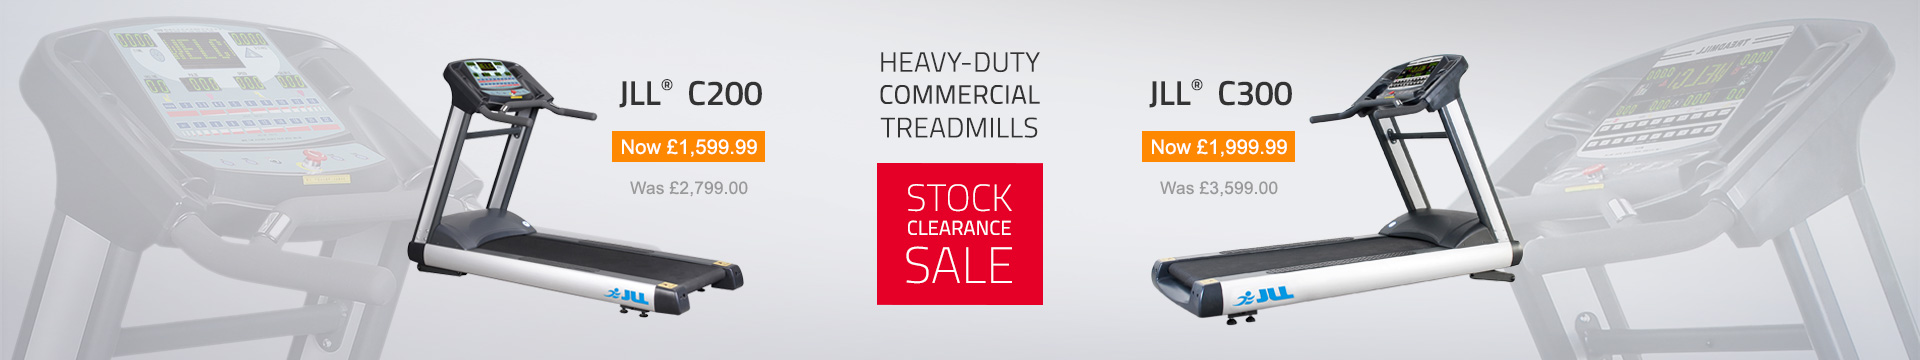 Stock Clearance Sale C200 and C300 Heavy-Duty Commercial Treadmill